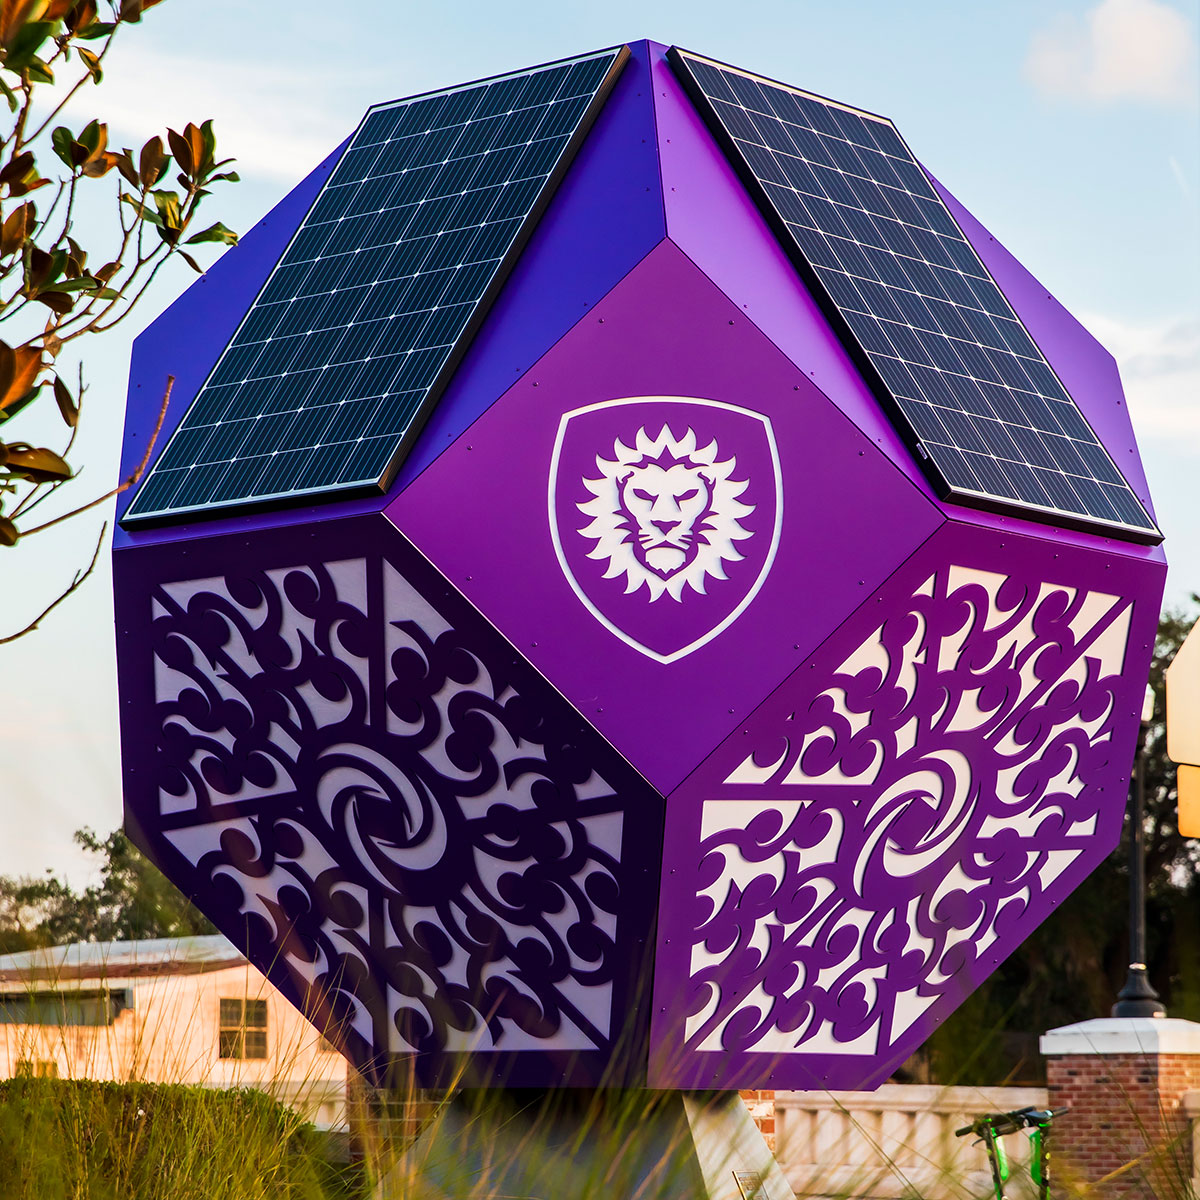 Two solar panels and intricate designs on the solar sculpture.